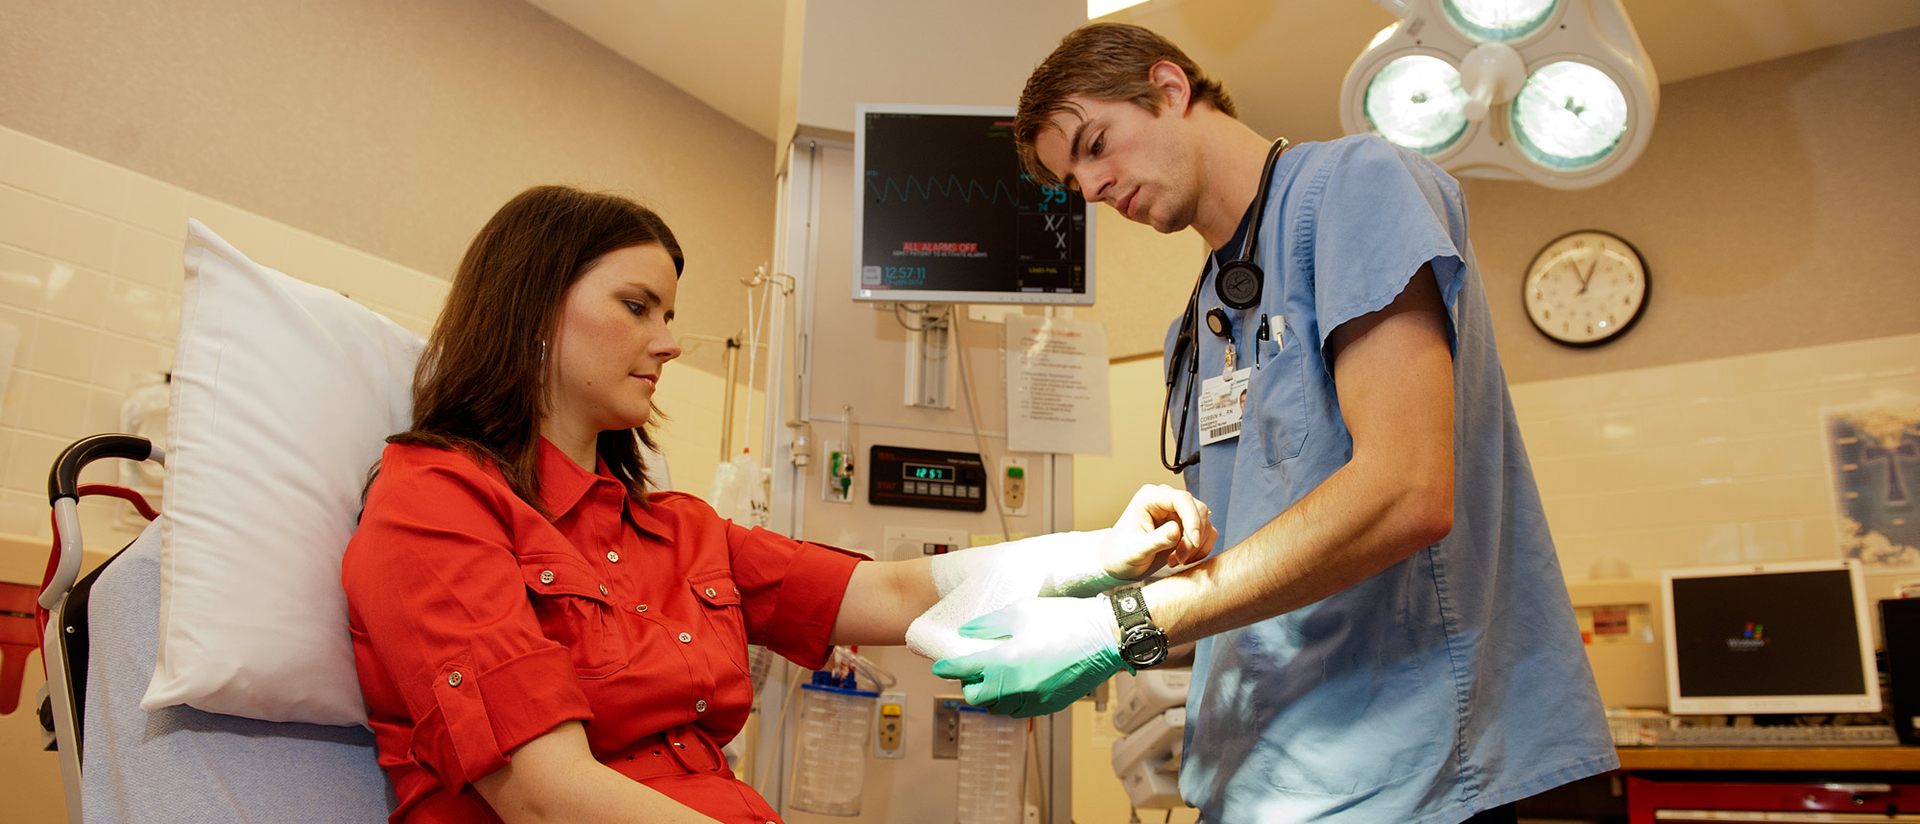 Nursing student taping up patient's forearm.